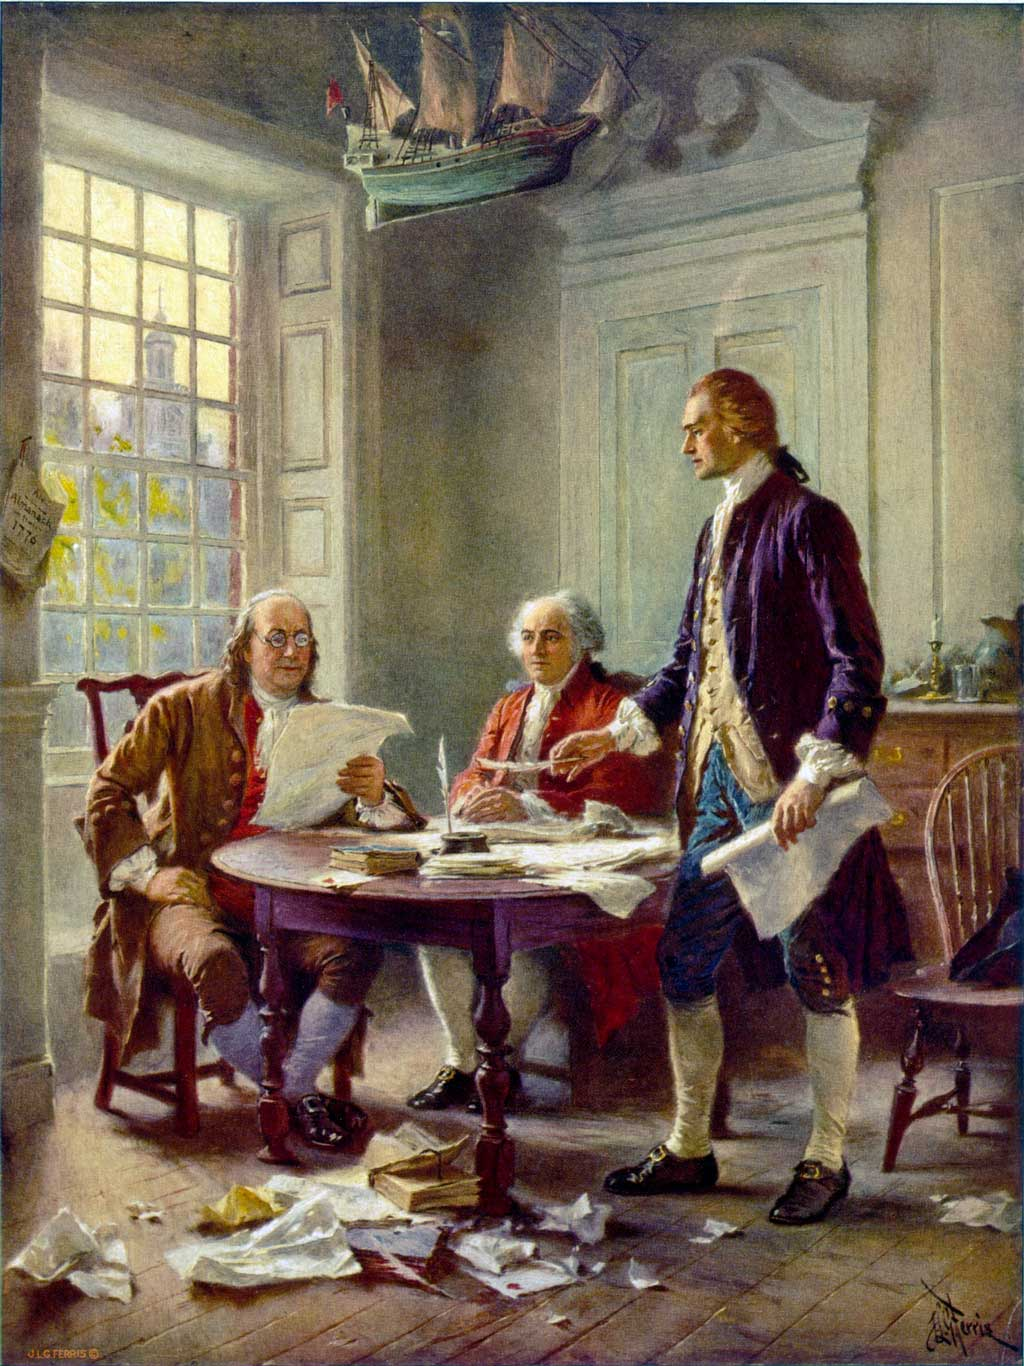 Thomas Jefferson (right), Benjamin Franklin (left), and John Adams (center) meet at Jefferson's lodgings, on the corner of Seventh and High (Market) streets in Philadelphia, to review a draft of the Declaration of Independence.